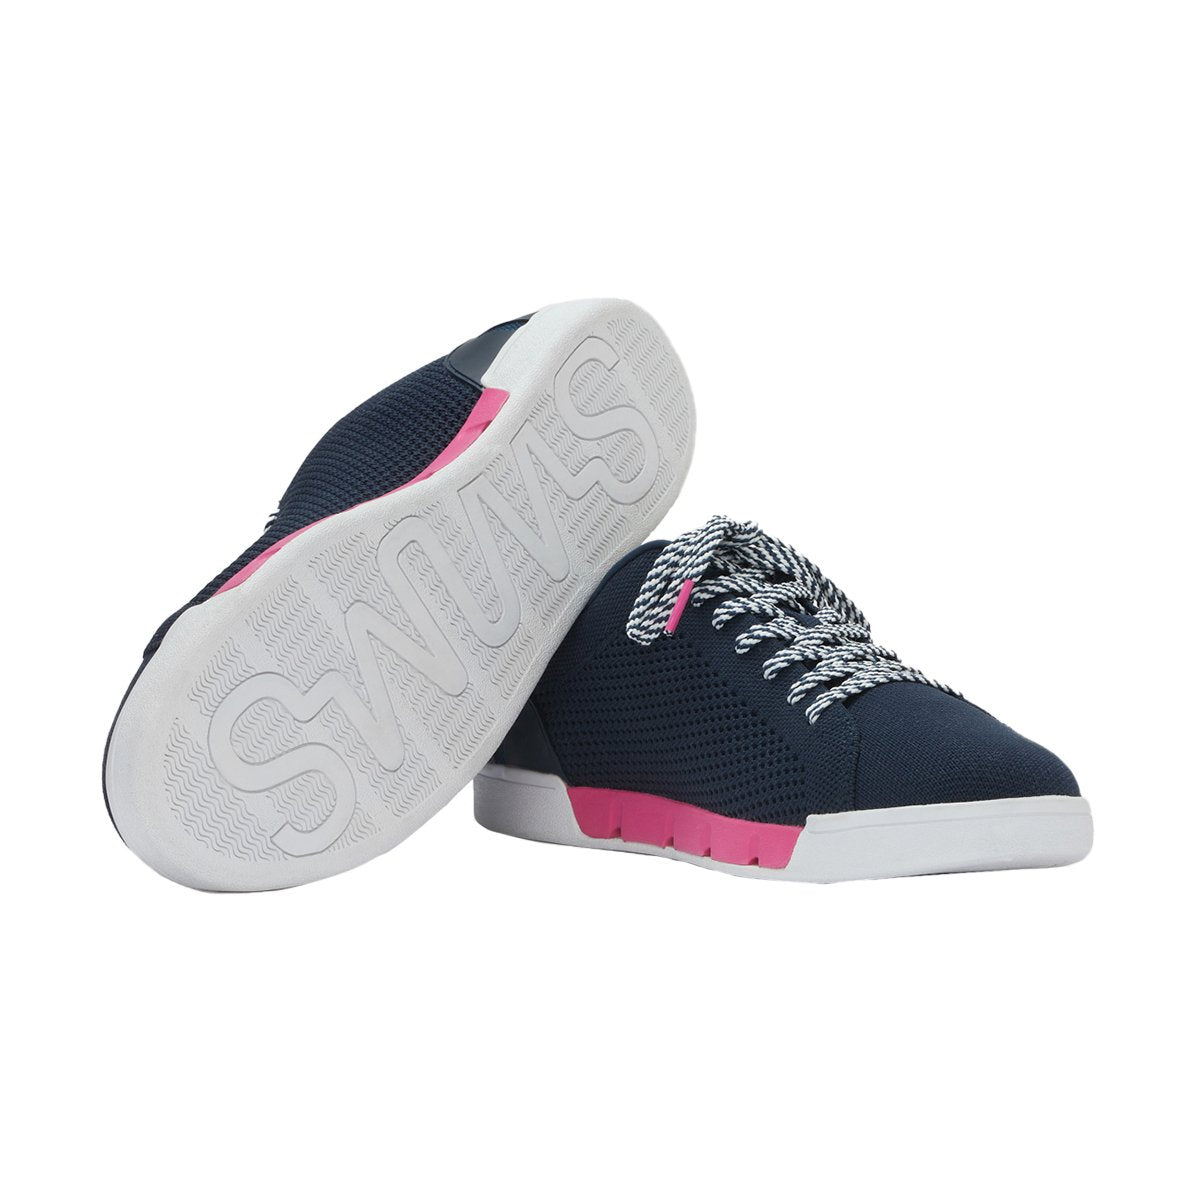 Psycho Bunny x SWIMS Breeze Knit Tennis - background::white,variant::navy